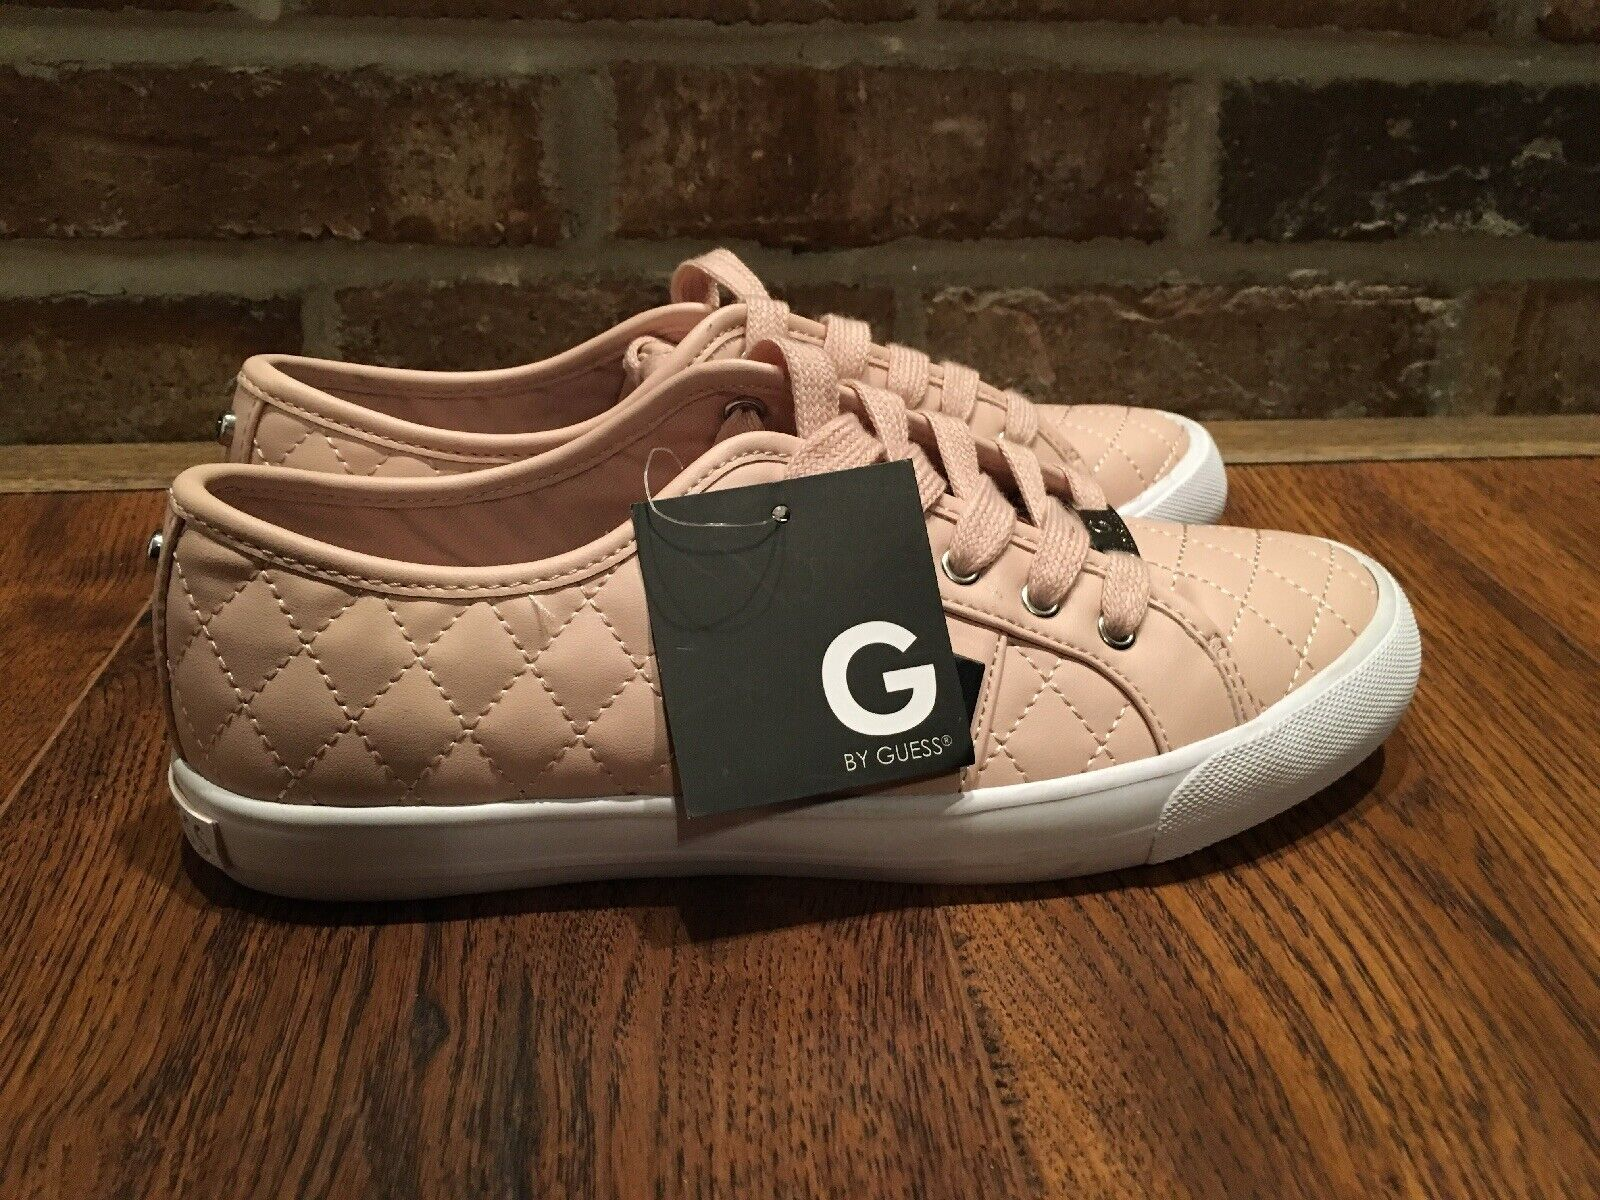 d9c88f4b3ba2 Guess Women Sz Sz Sz 8 Lace Up Leather Quilted Sneakers shoes Pink Soles G  By Guess 0d14f6